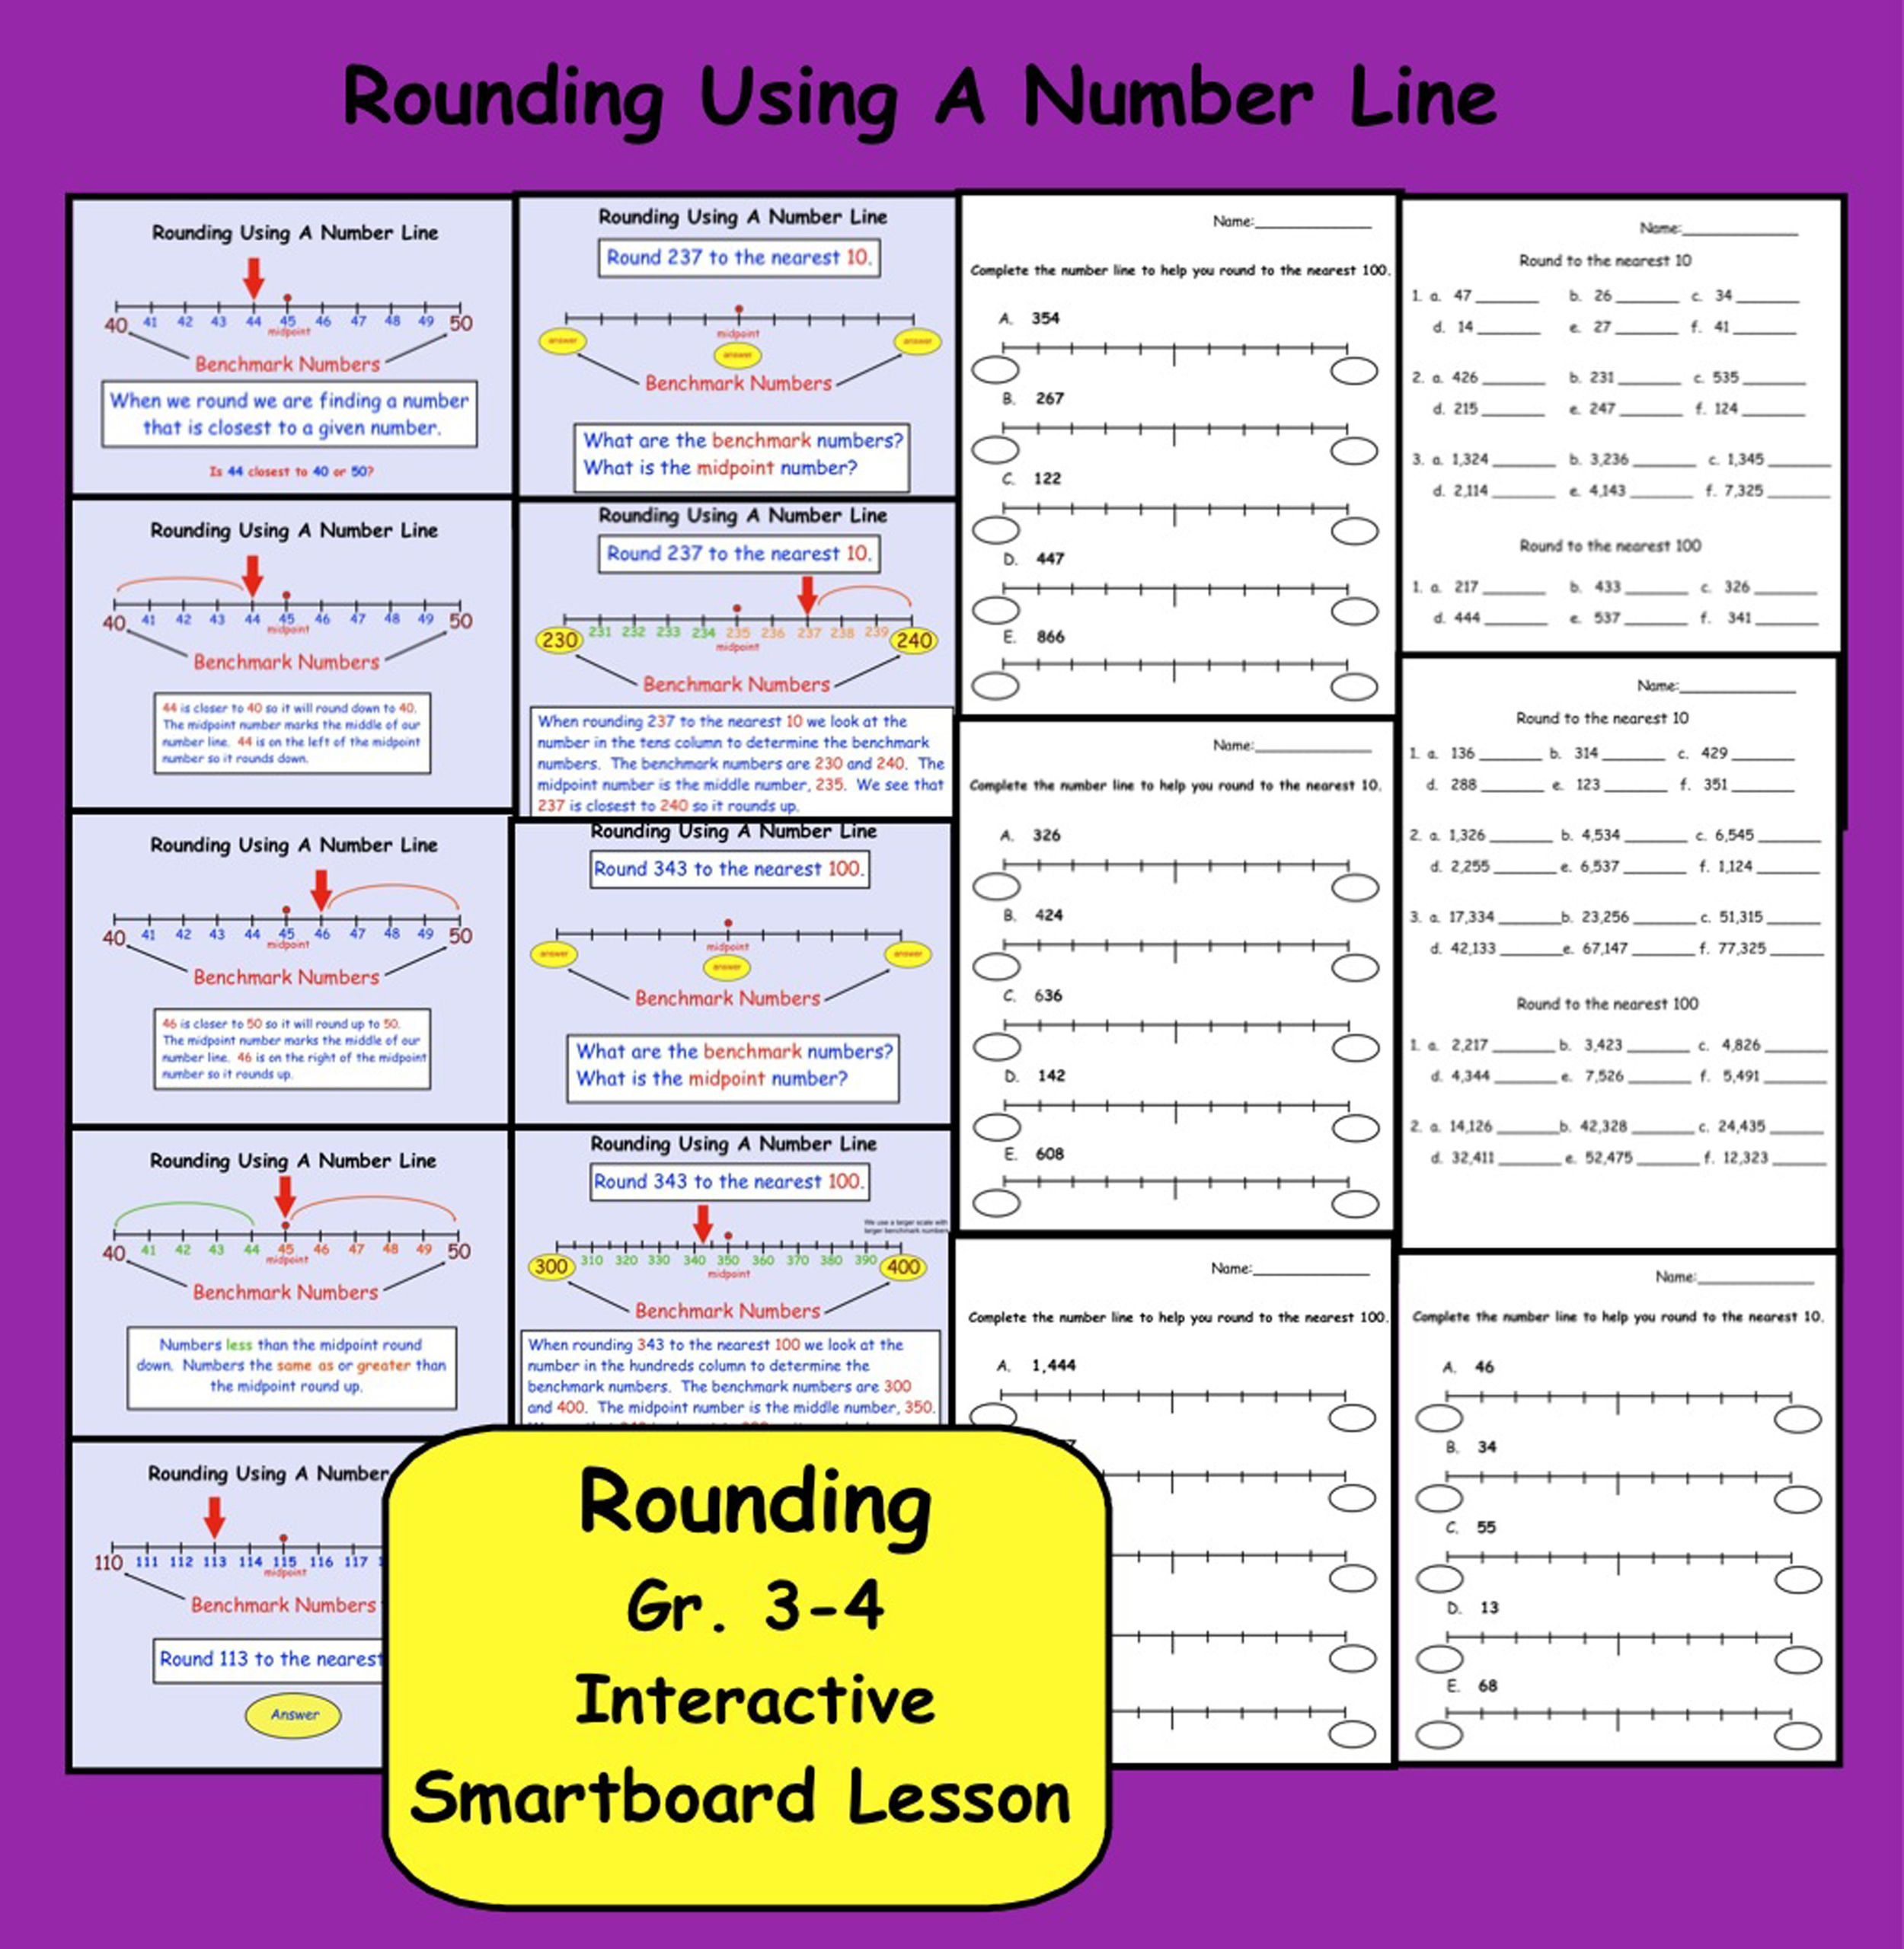 Rounding Using A Number Line Interactive Smartboard Lesson For Gr 3 4